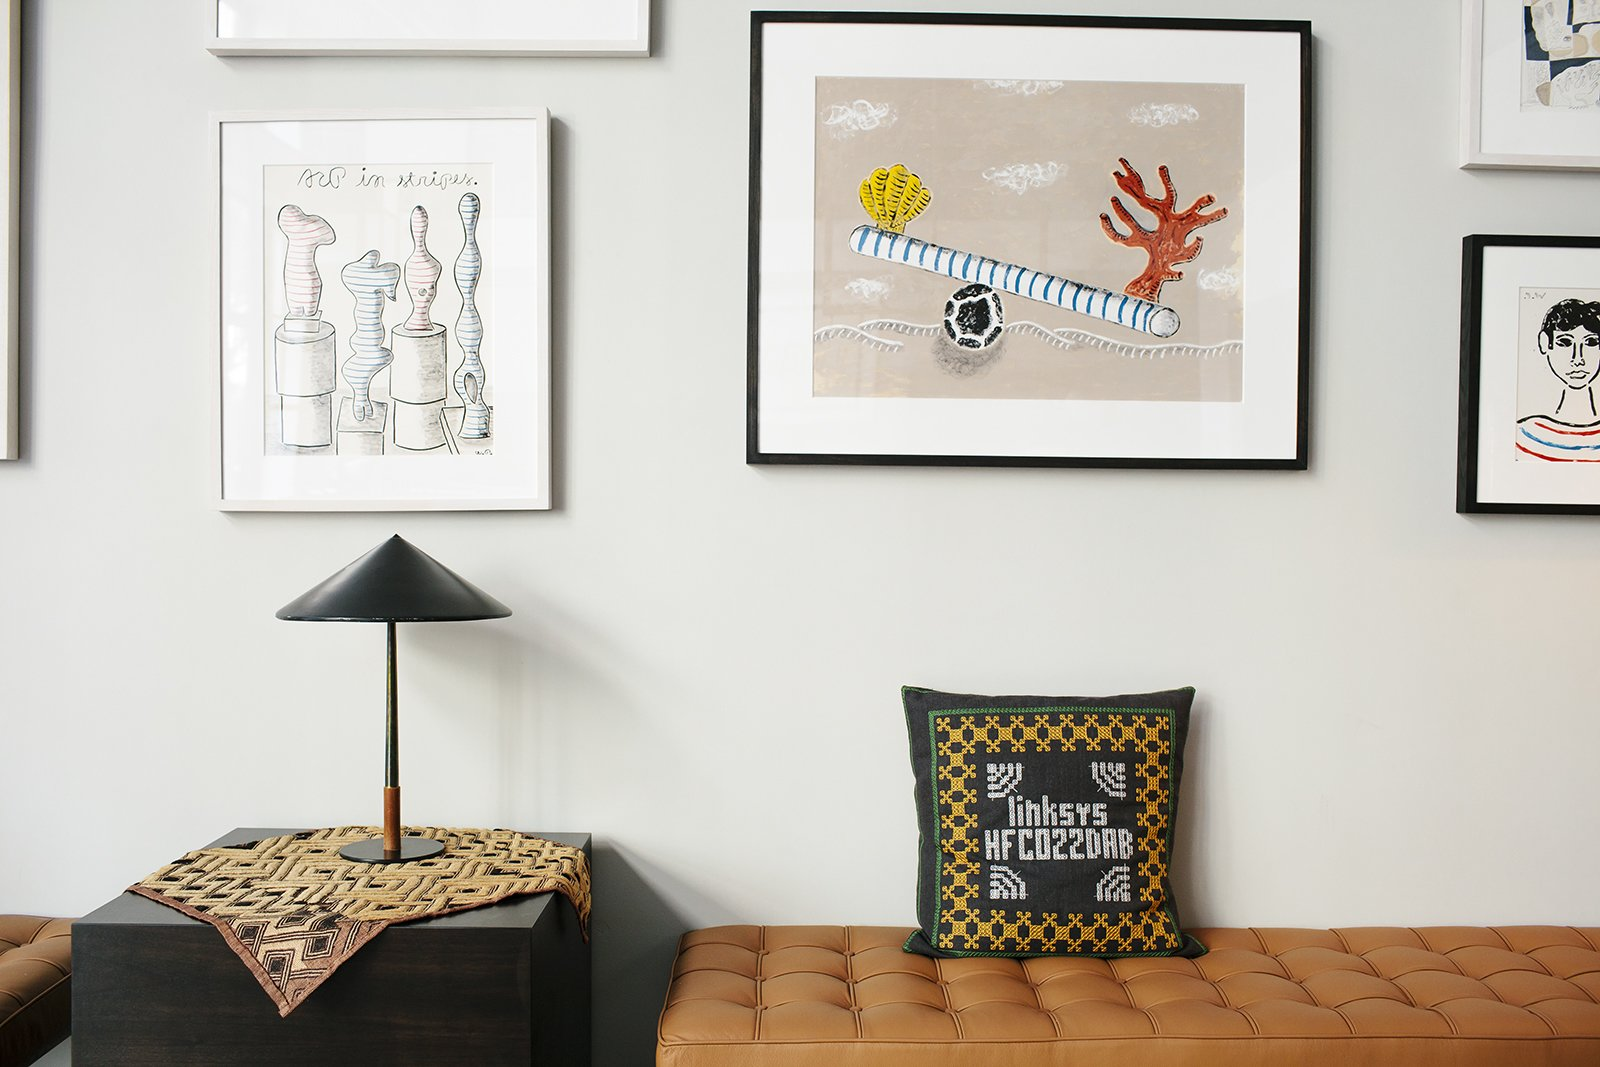 living room with hanging art